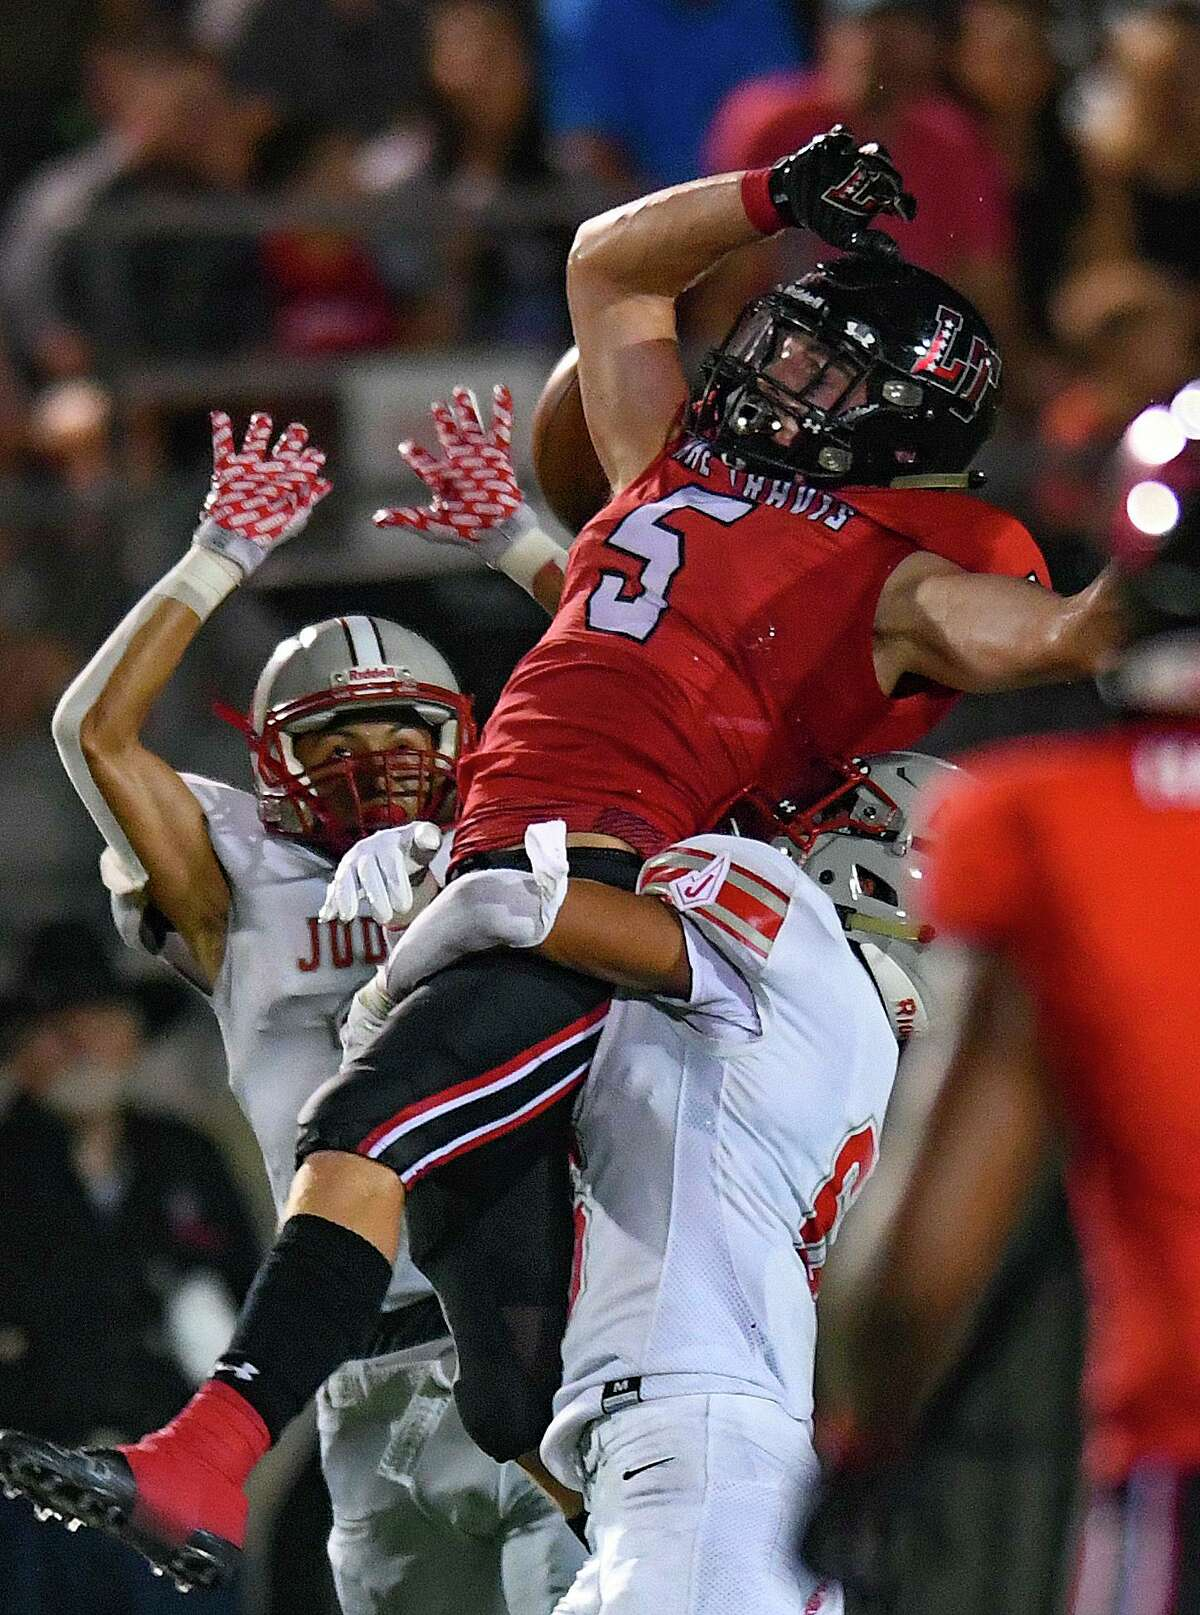 Judson defenders zero in on Lake Travis receiver Isaac Norris during high school football action at Cavalier Stadium on Friday, Sept. 3, 2021.